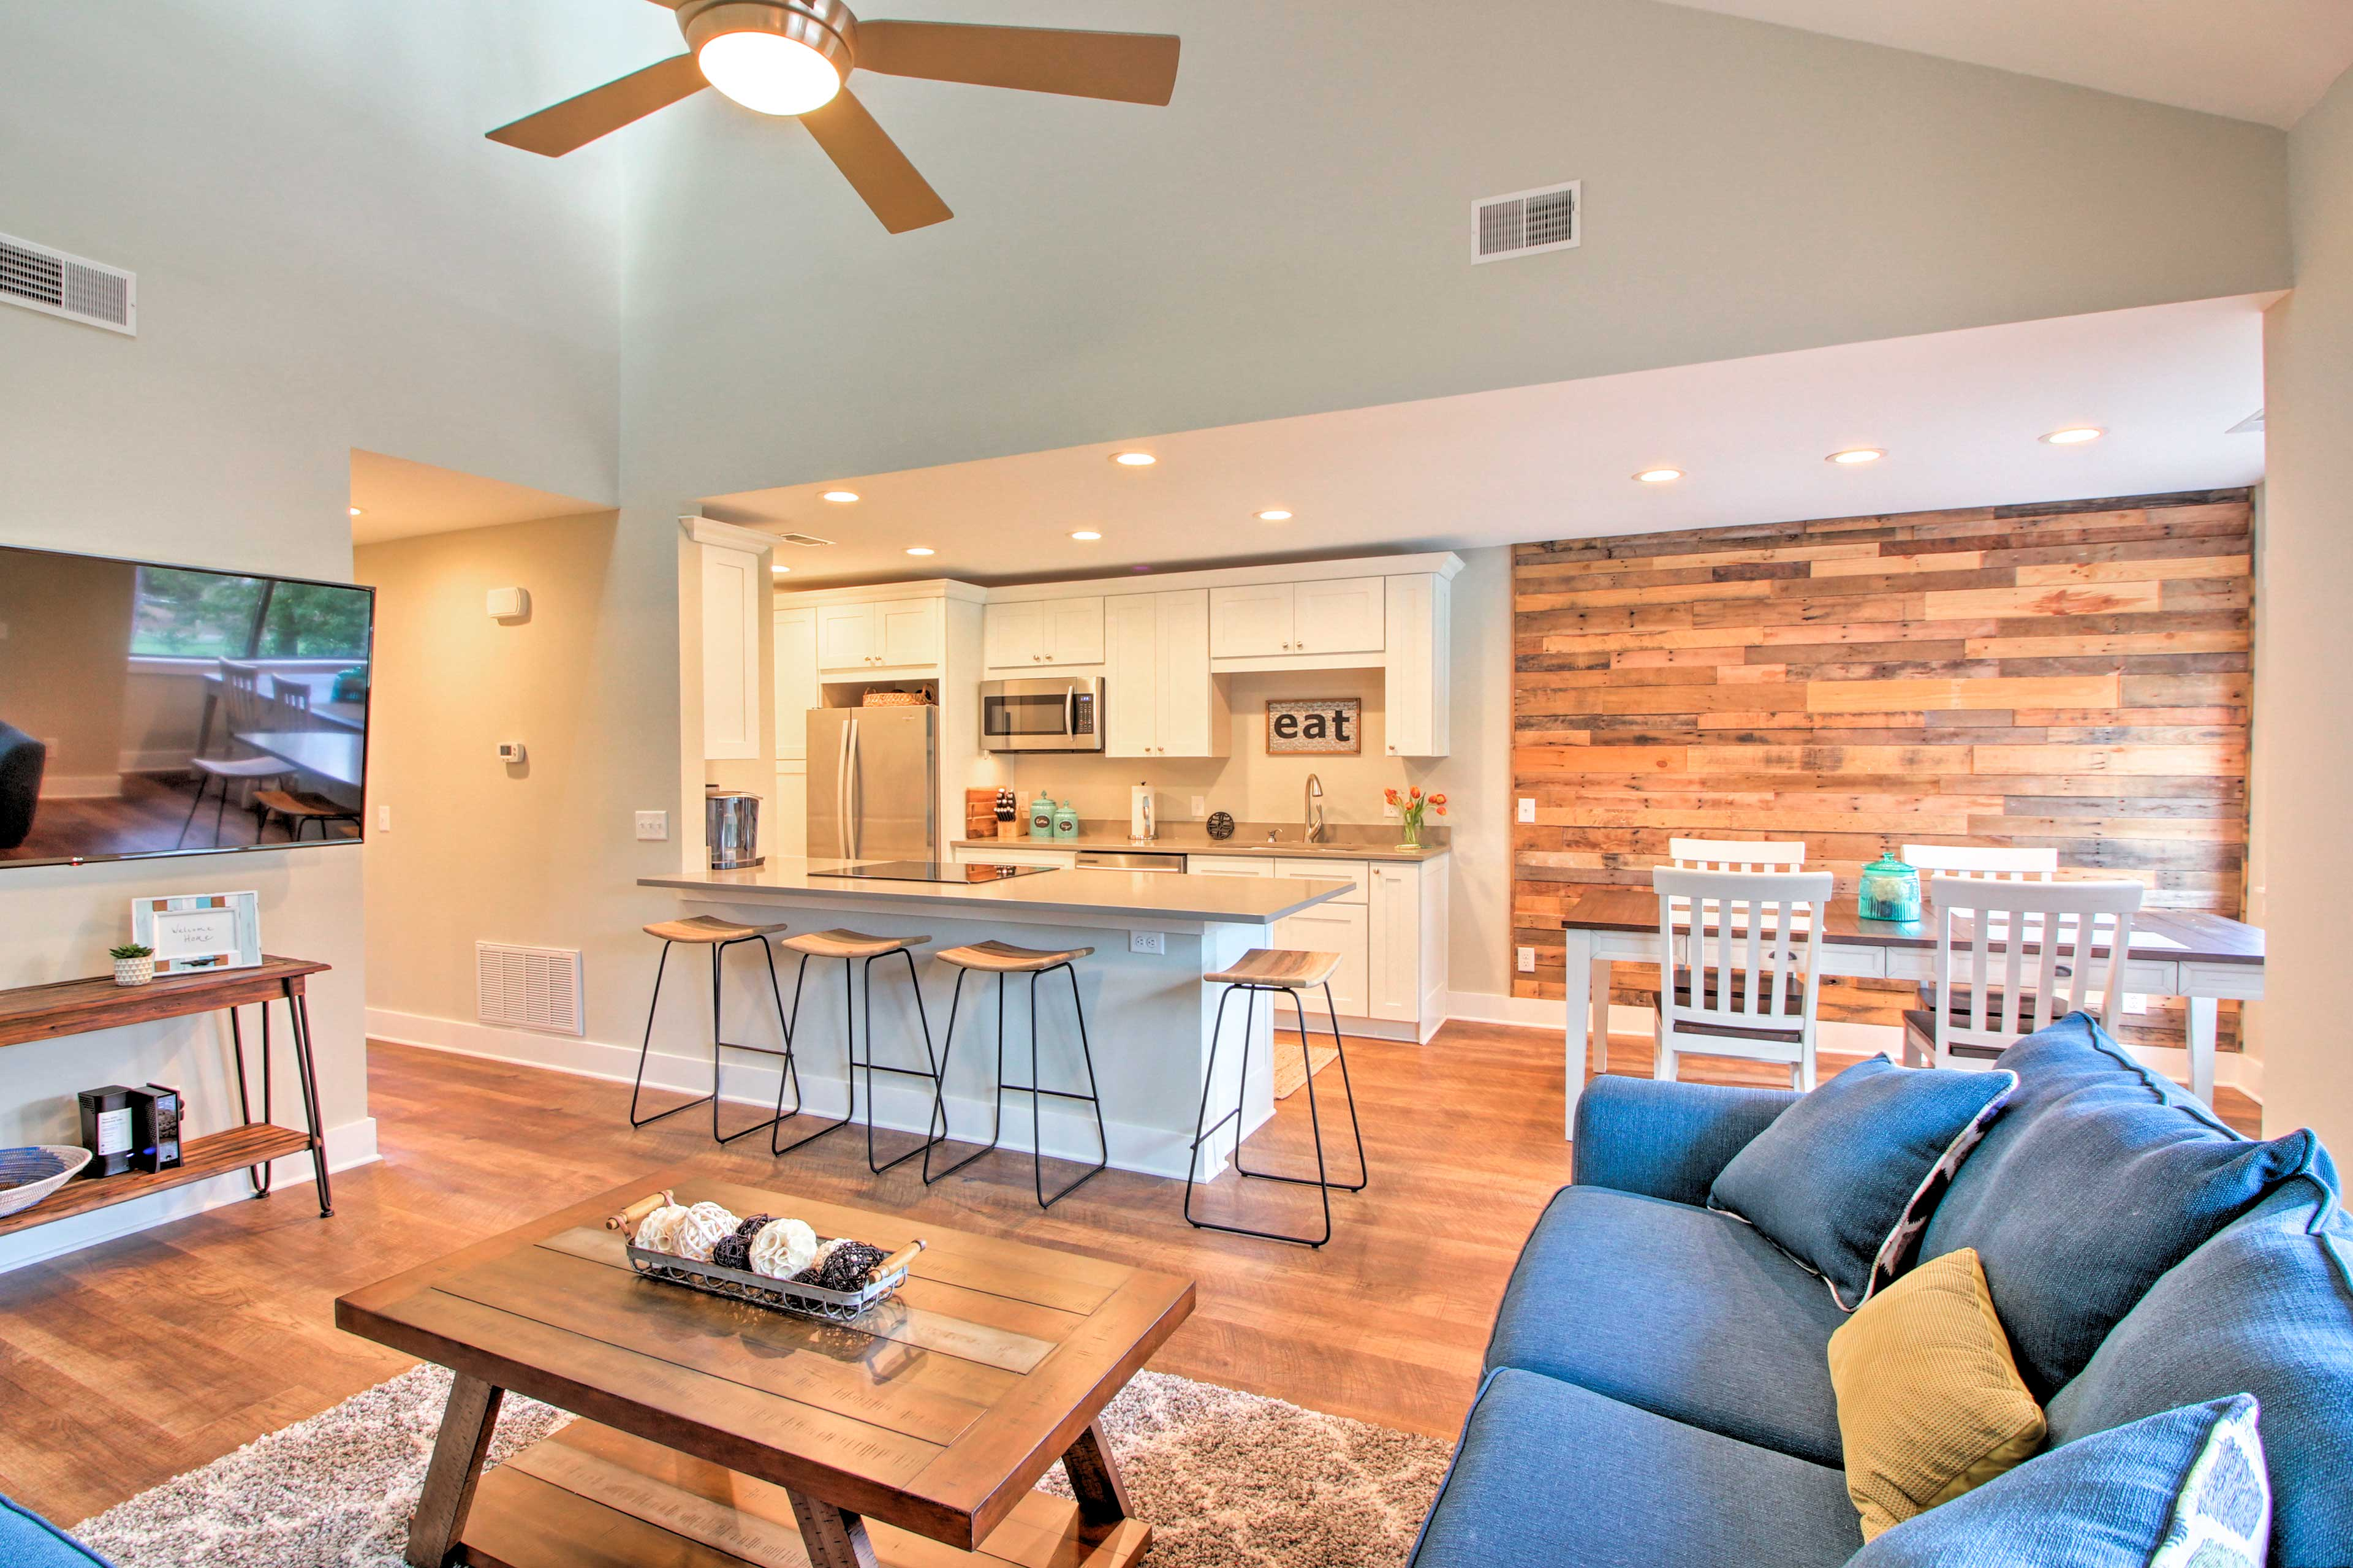 This stunning condo is the place to book for your next getaway to Hilton head!